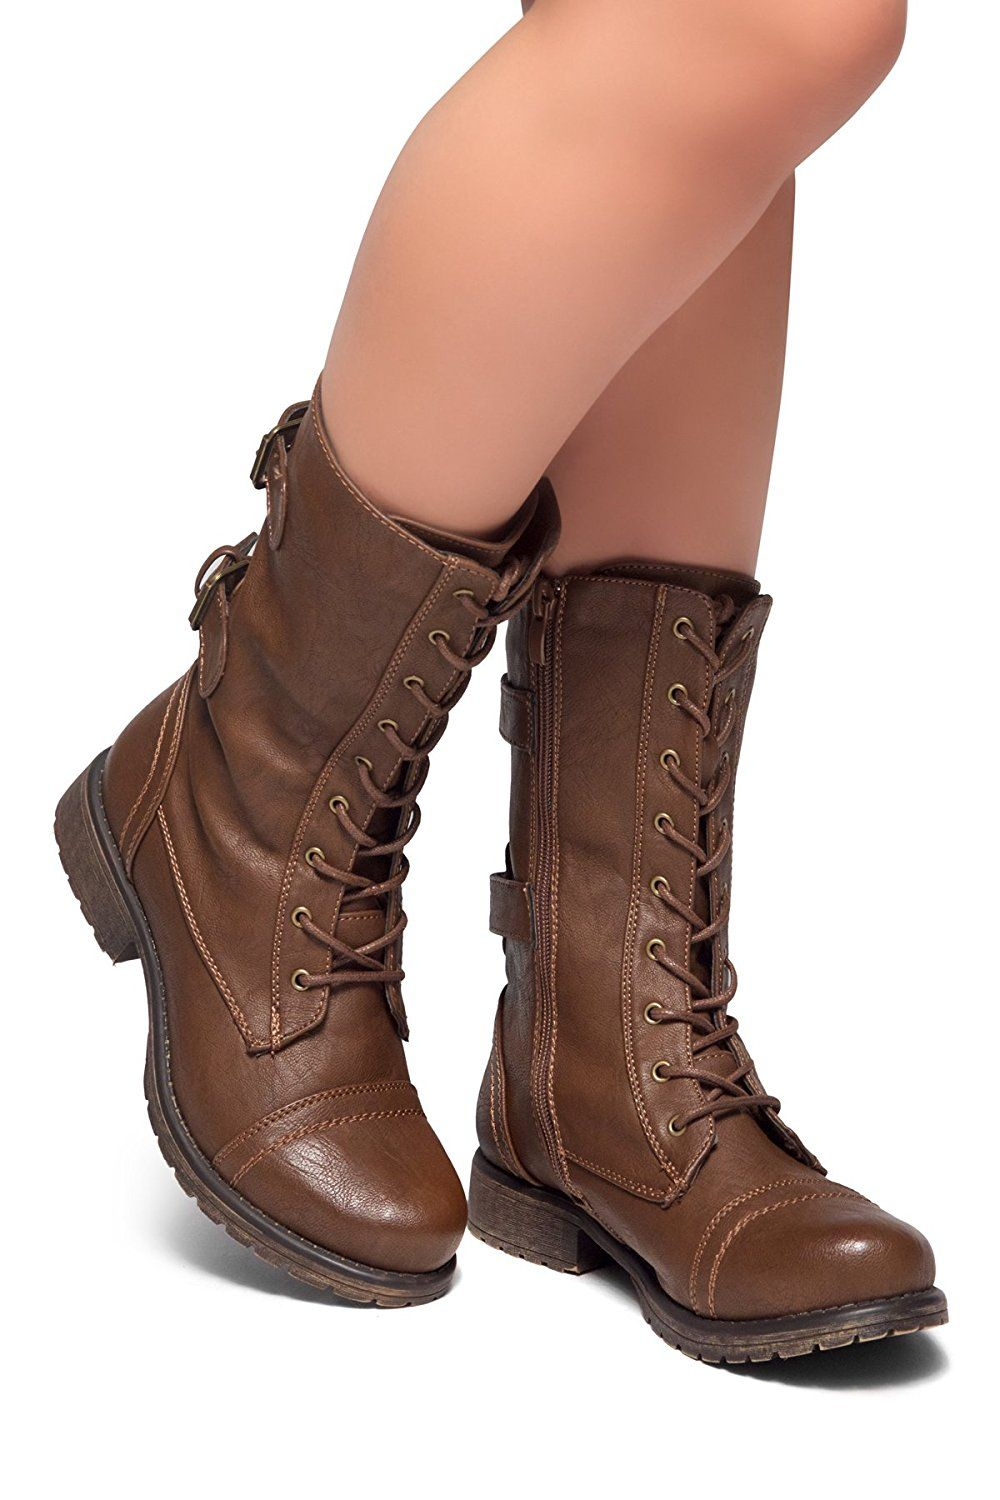 43629fe0f Herstyle Florence2 Women's Military Ankle Lace Up Buckle Combat Boots Mid  Knee Booties. Abby has a pair very similar to these, seen in S08E15